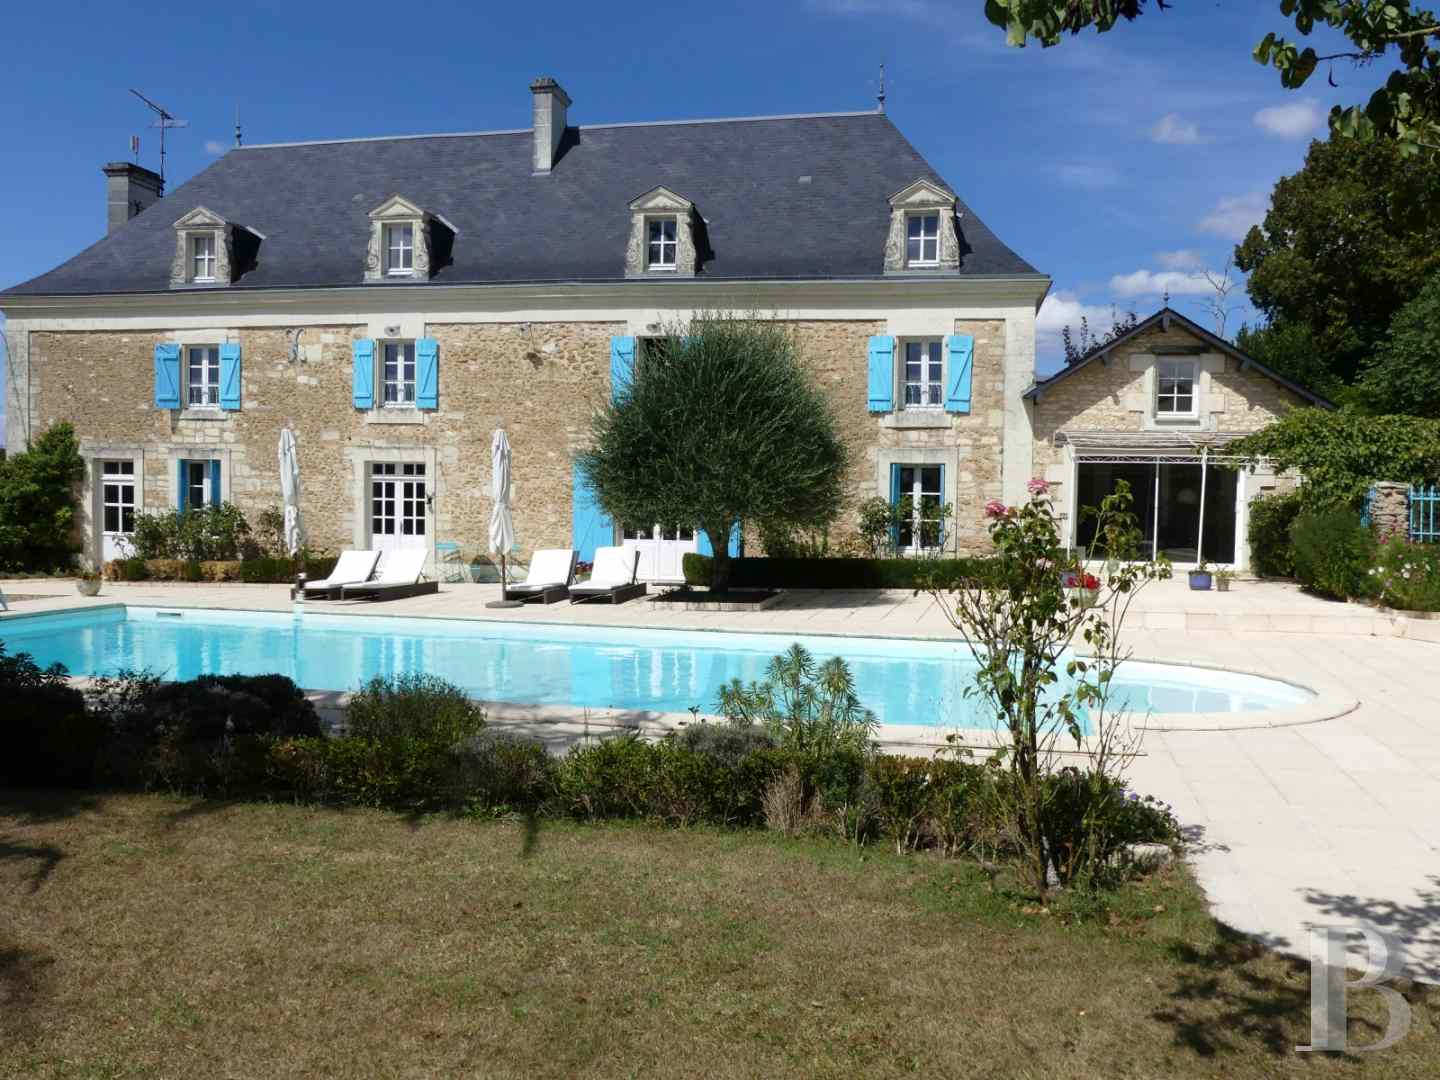 property for sale France poitou charentes residences farms - 1 zoom